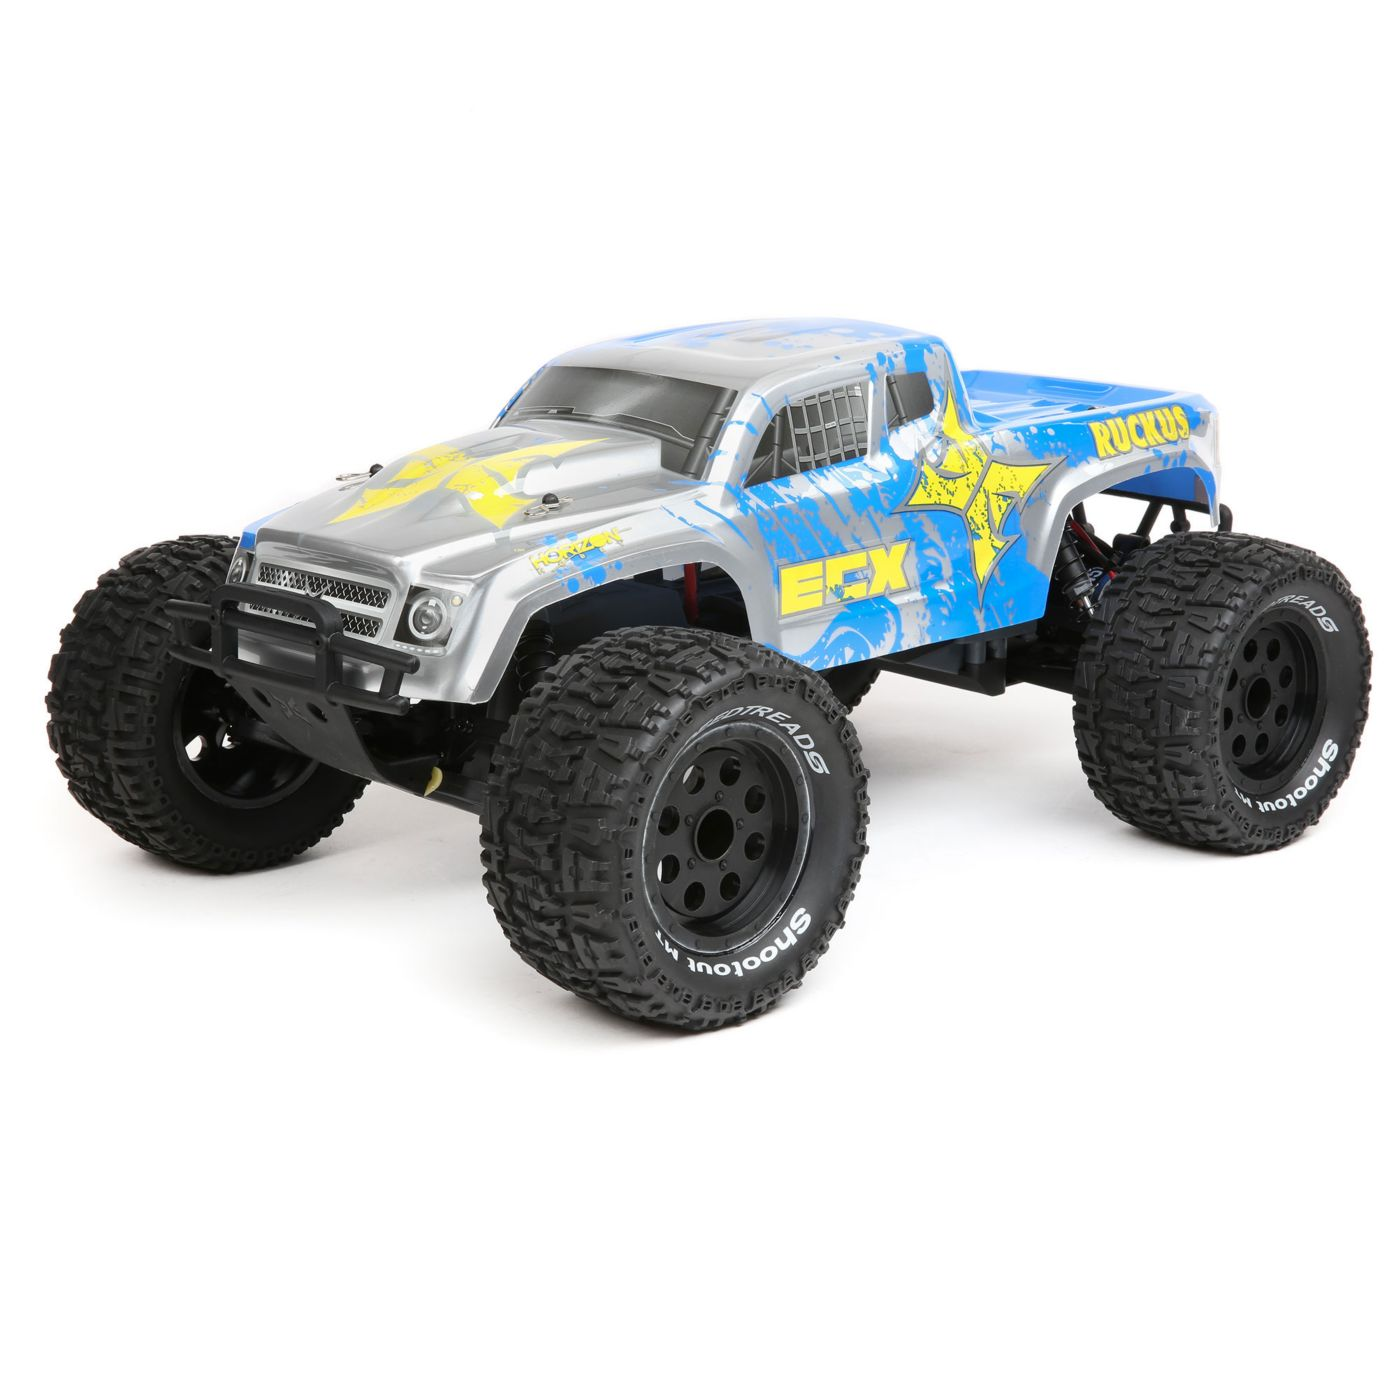 1/10 Ruckus 2WD Monster Truck, Brushed, LiPo RTR: Silver/Blue